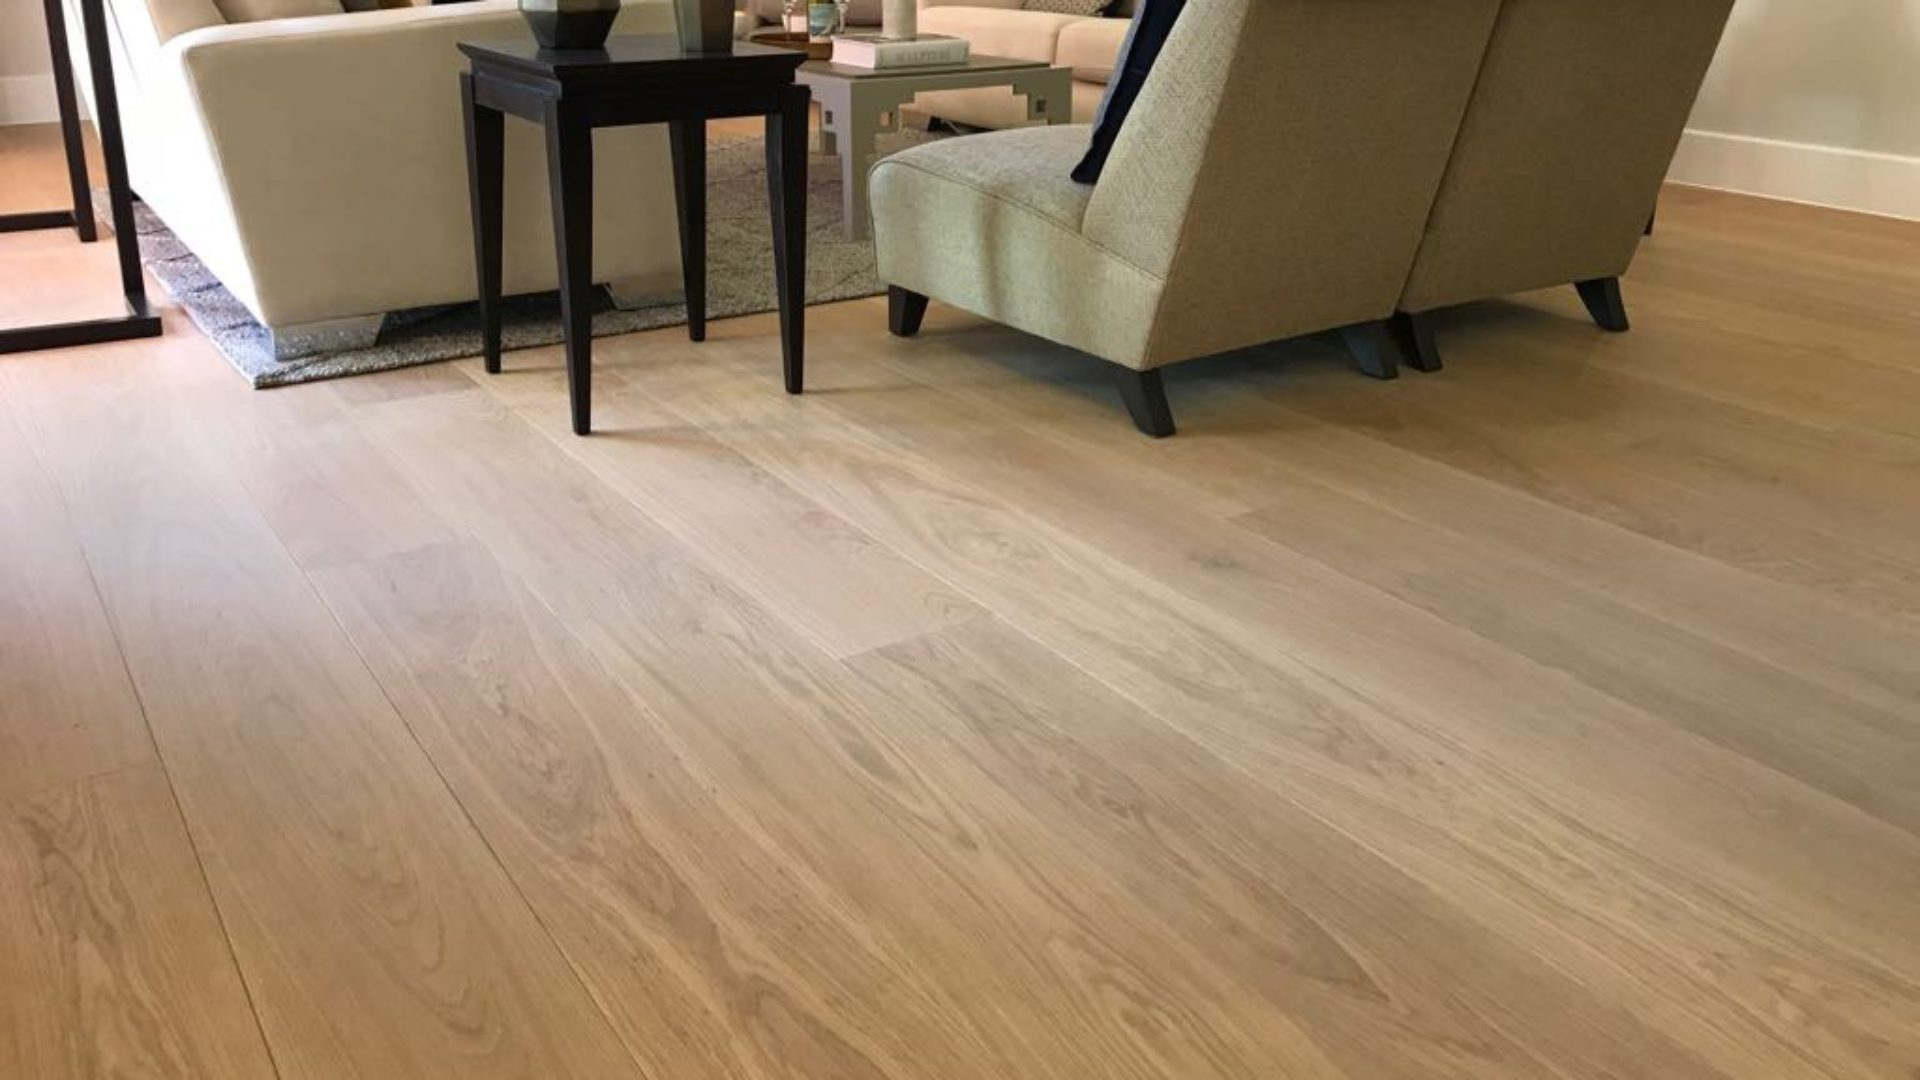 Turnbull Flooring